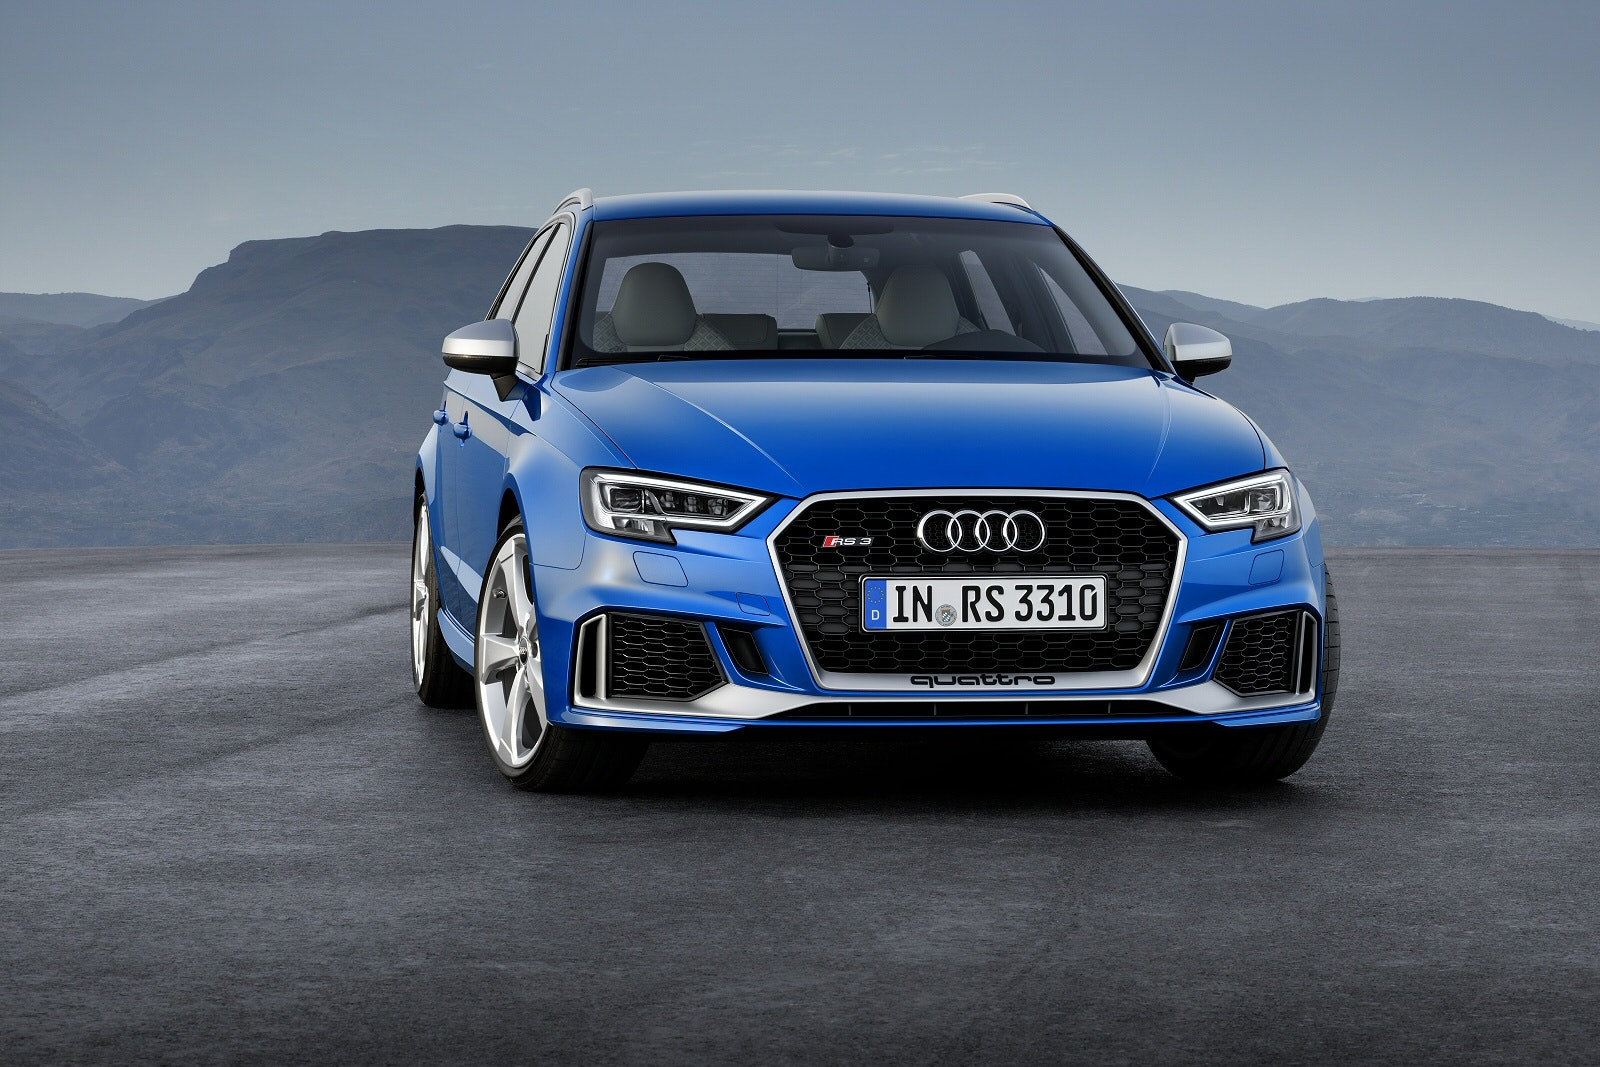 Audi Rs 3 Sportback 2020 Review Leasefetcher